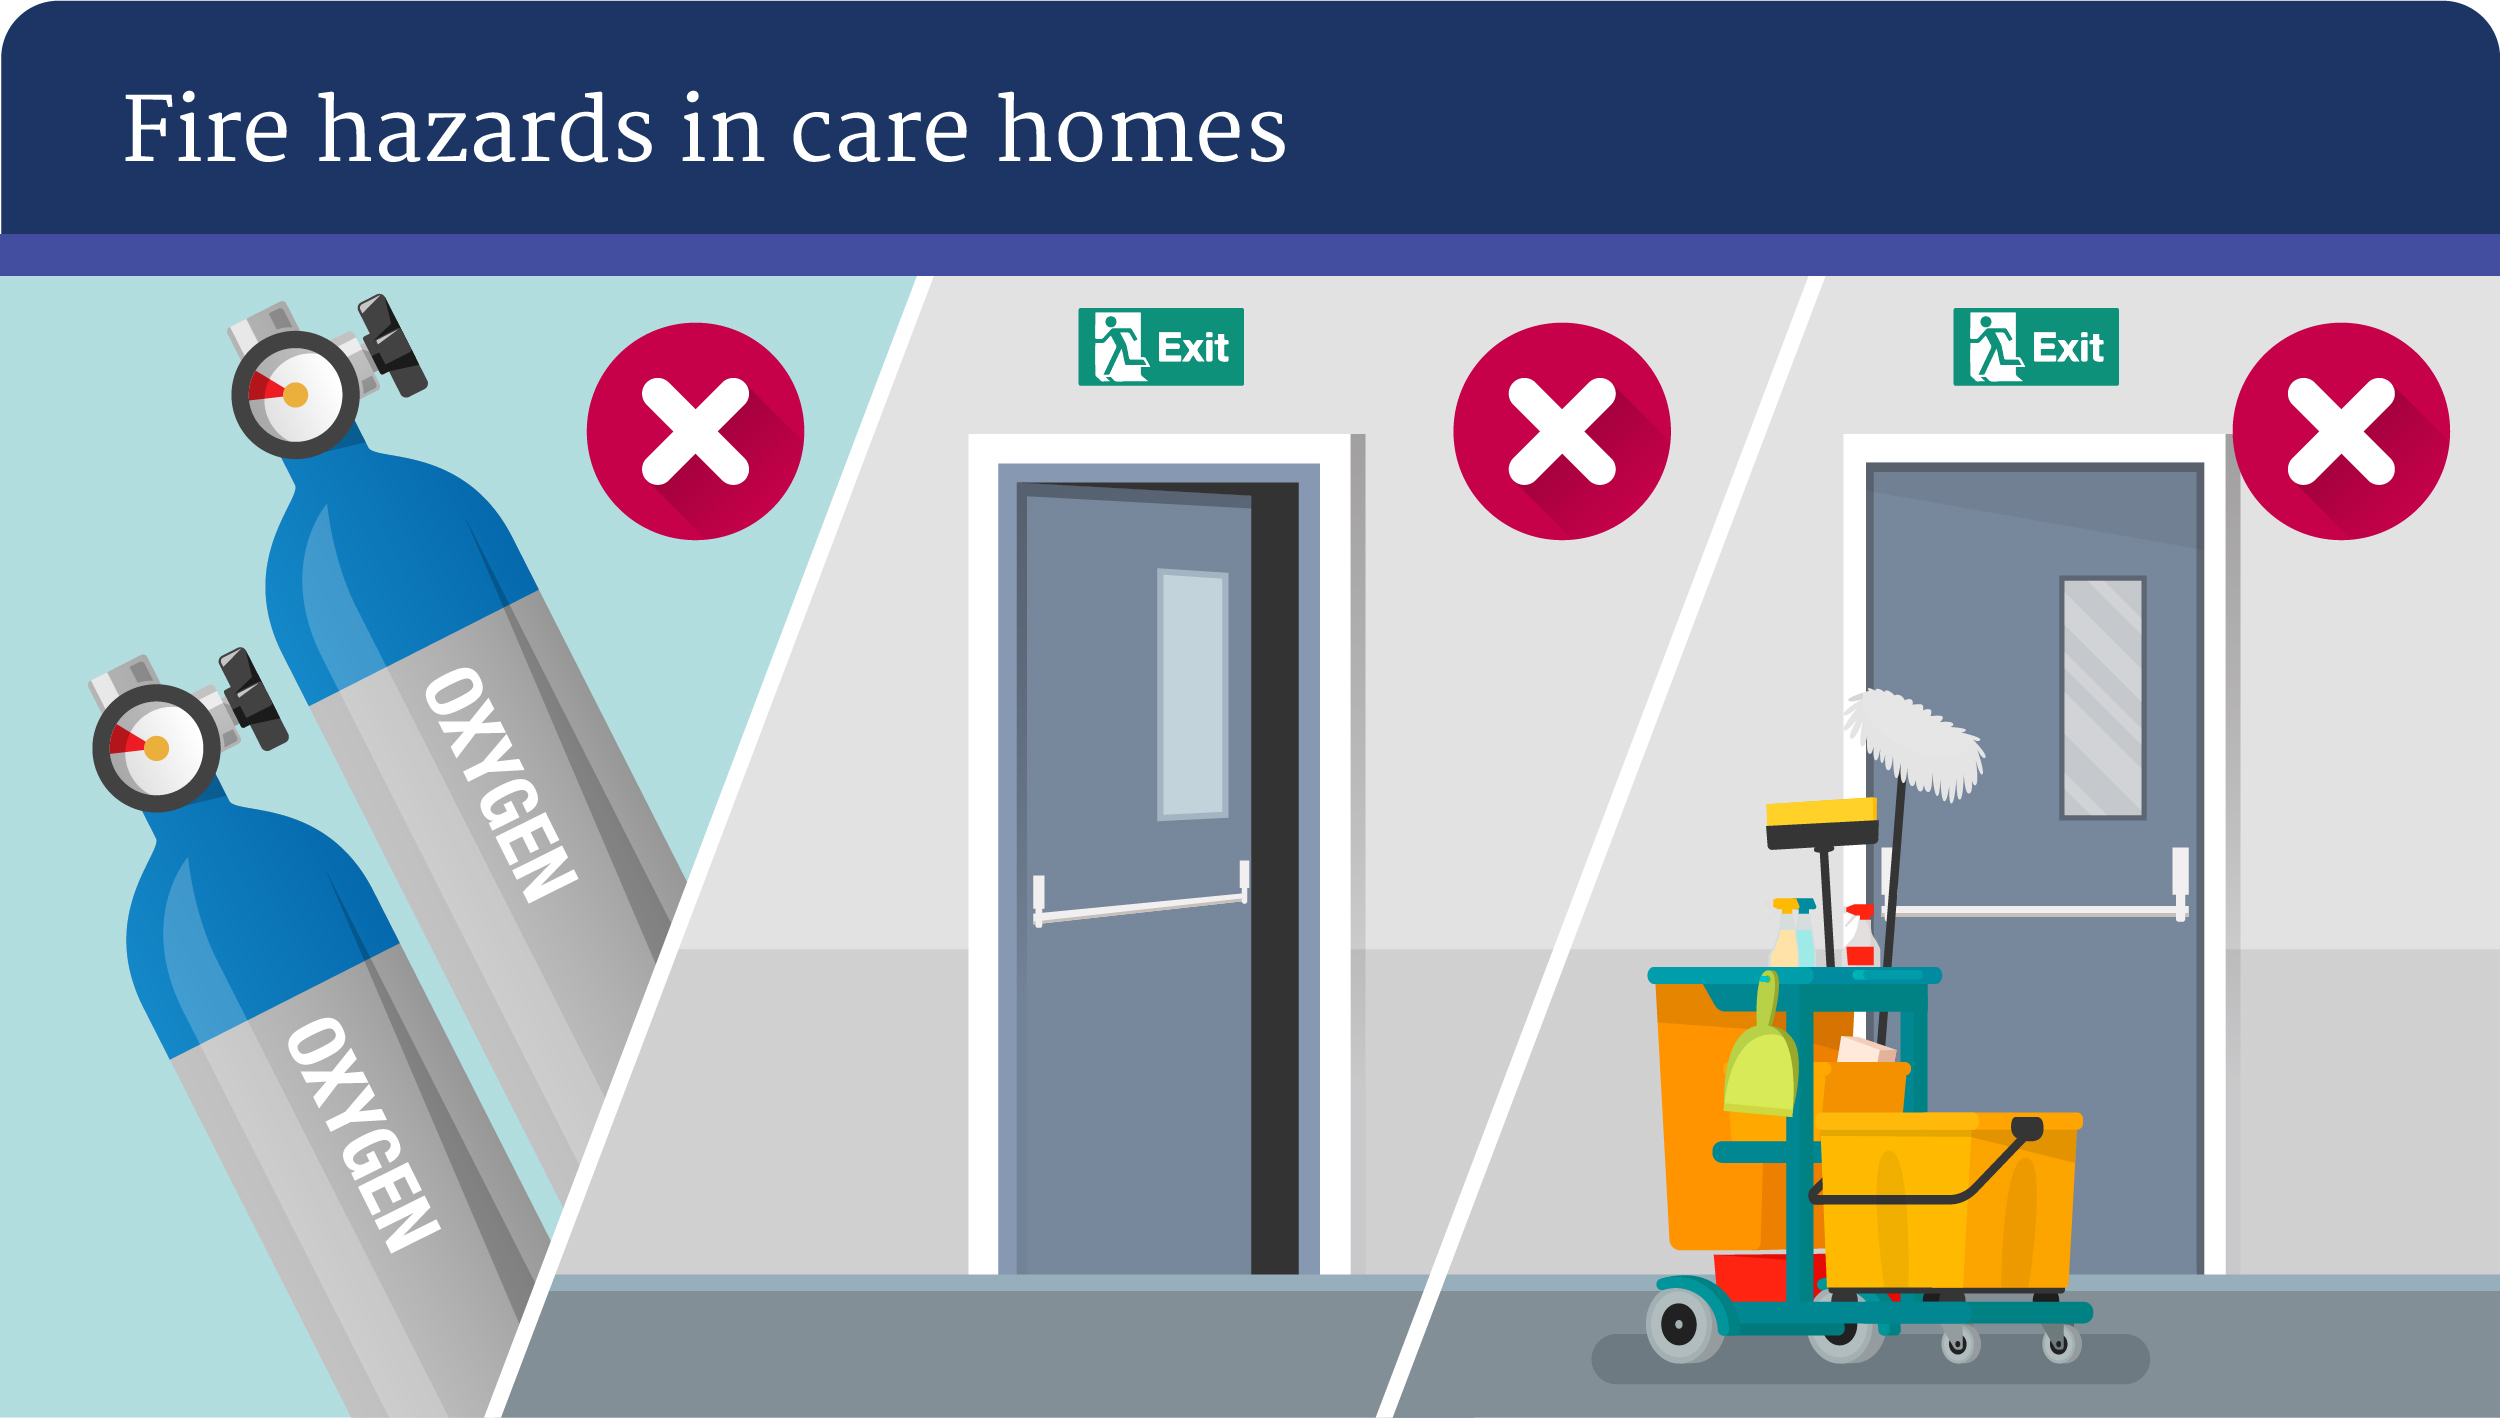 Fire Safety in Care Homes - Fire Hazards